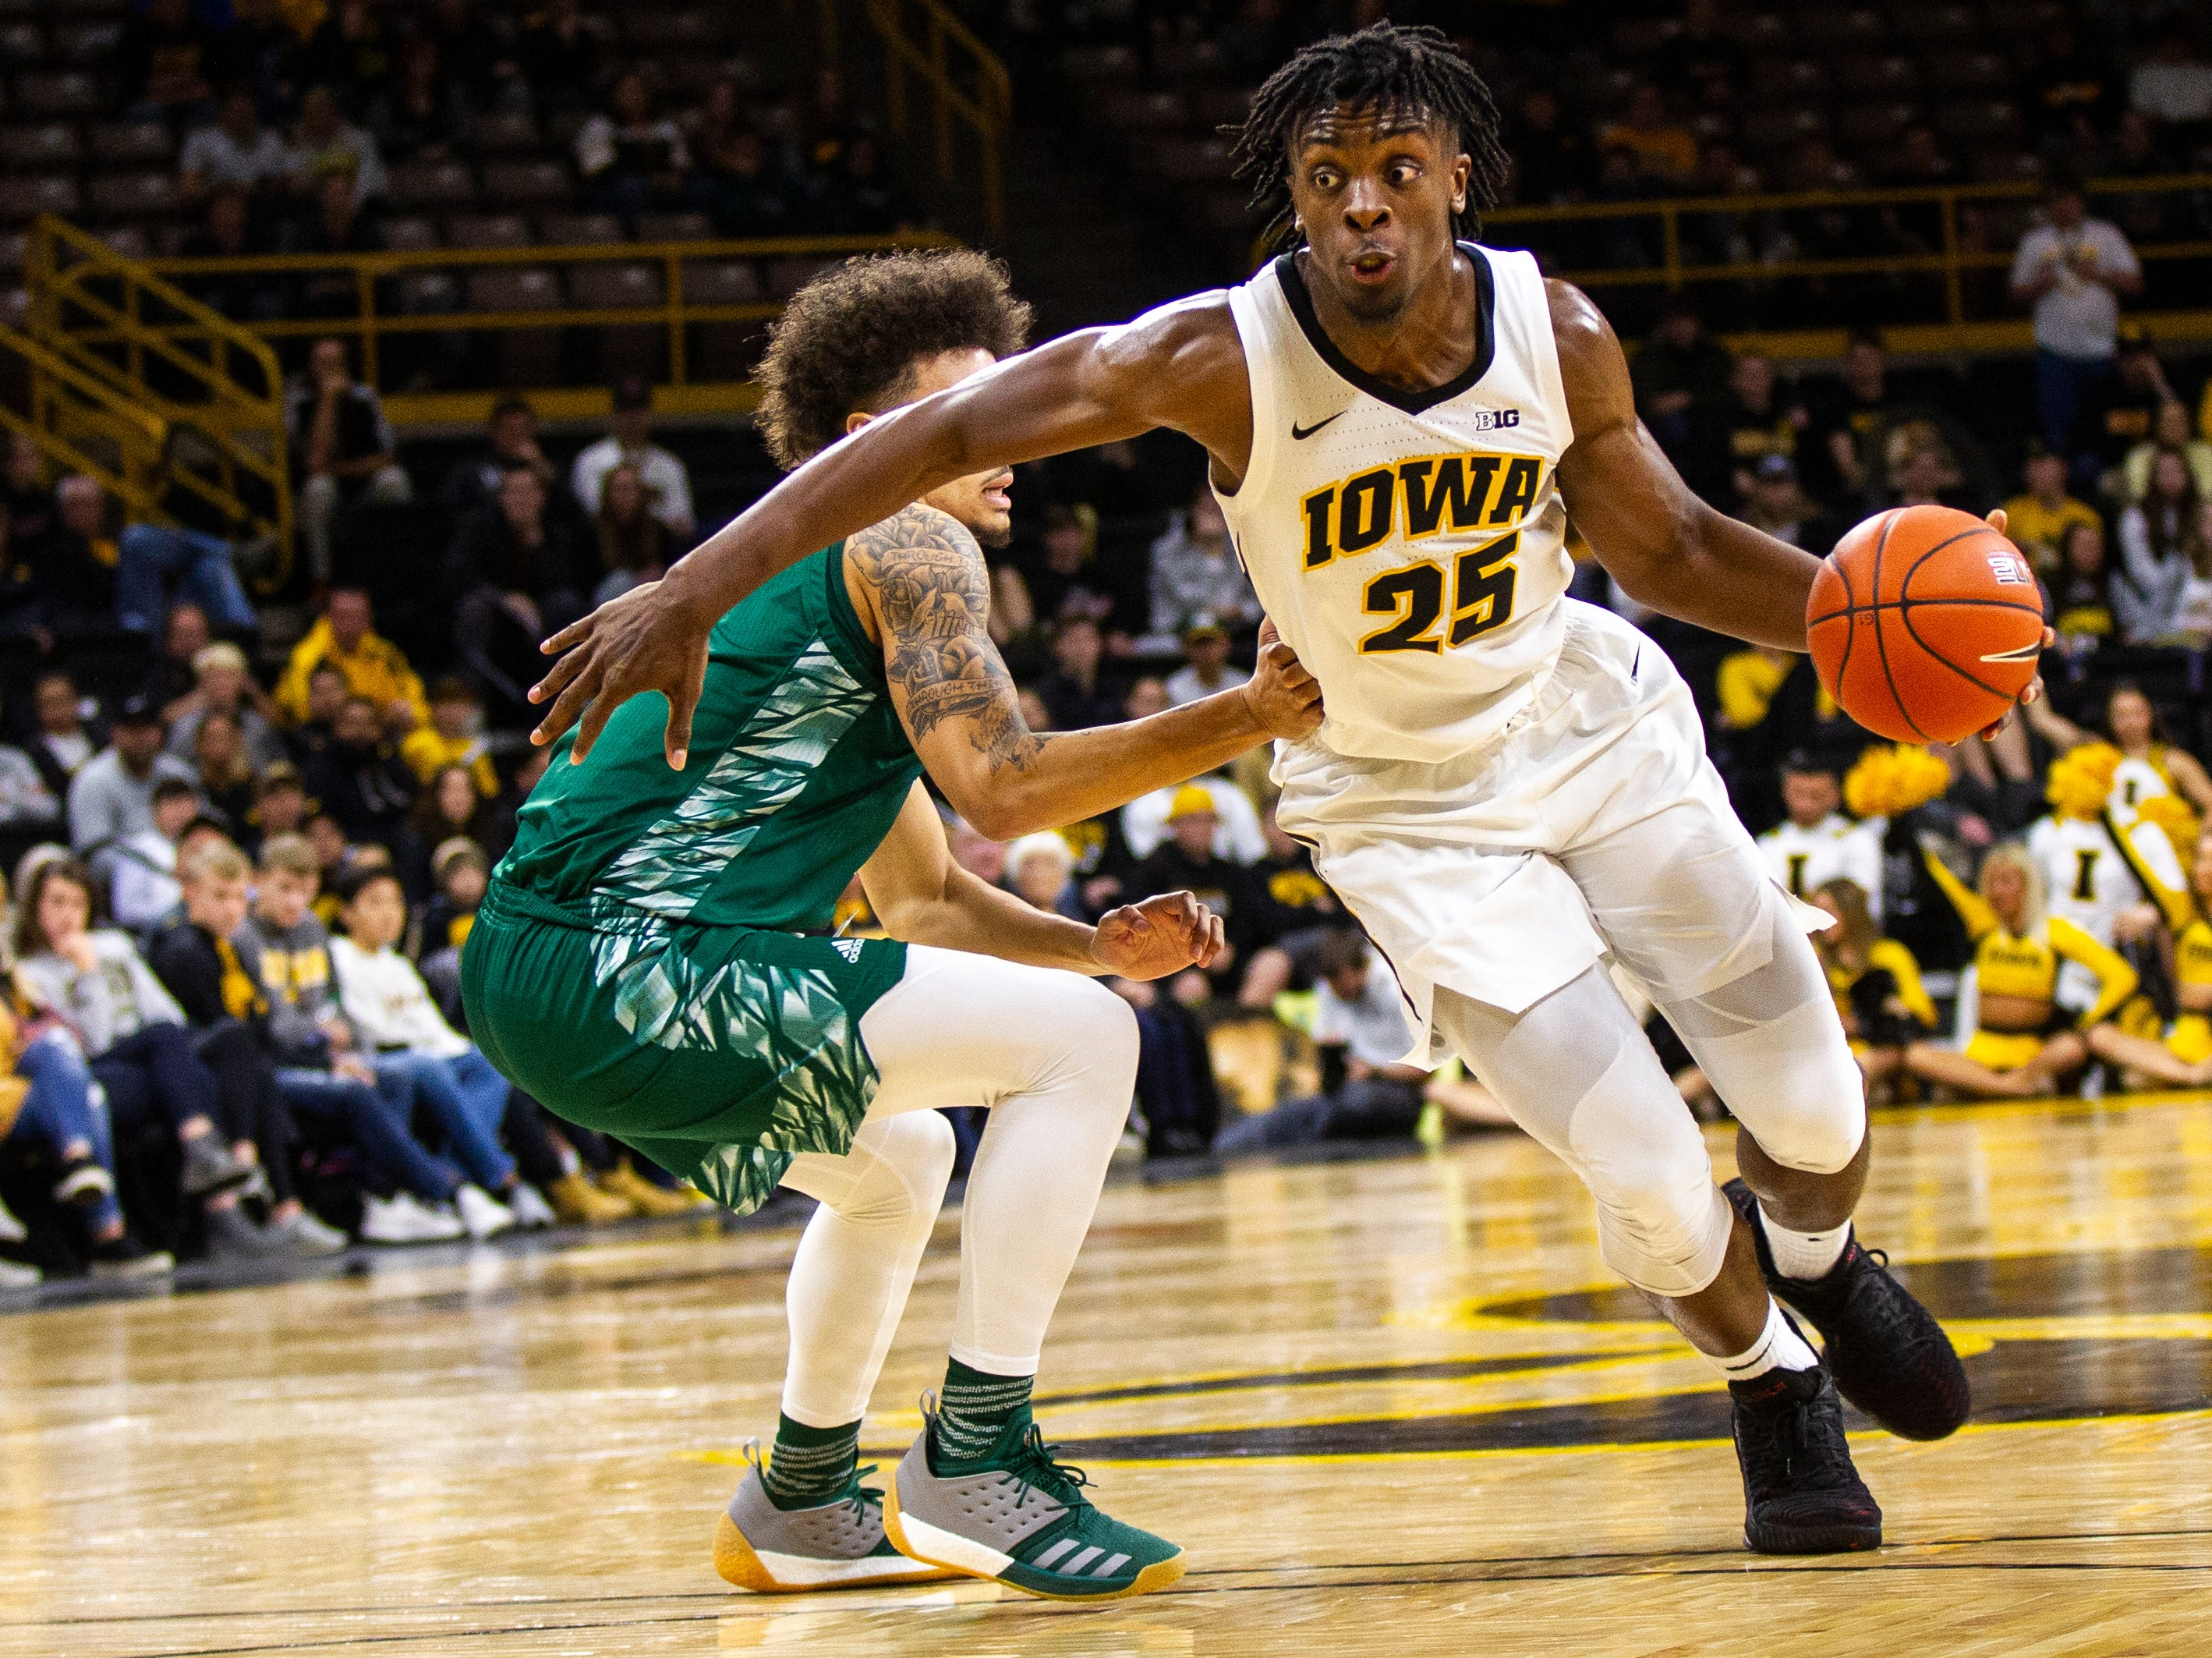 Iowa forward Tyler Cook (25) drives to the hoop during an NCAA men's basketball game in the 2K Empire Classic on Sunday, Nov. 11, 2018, at Carver-Hawkeye Arena in Iowa City.